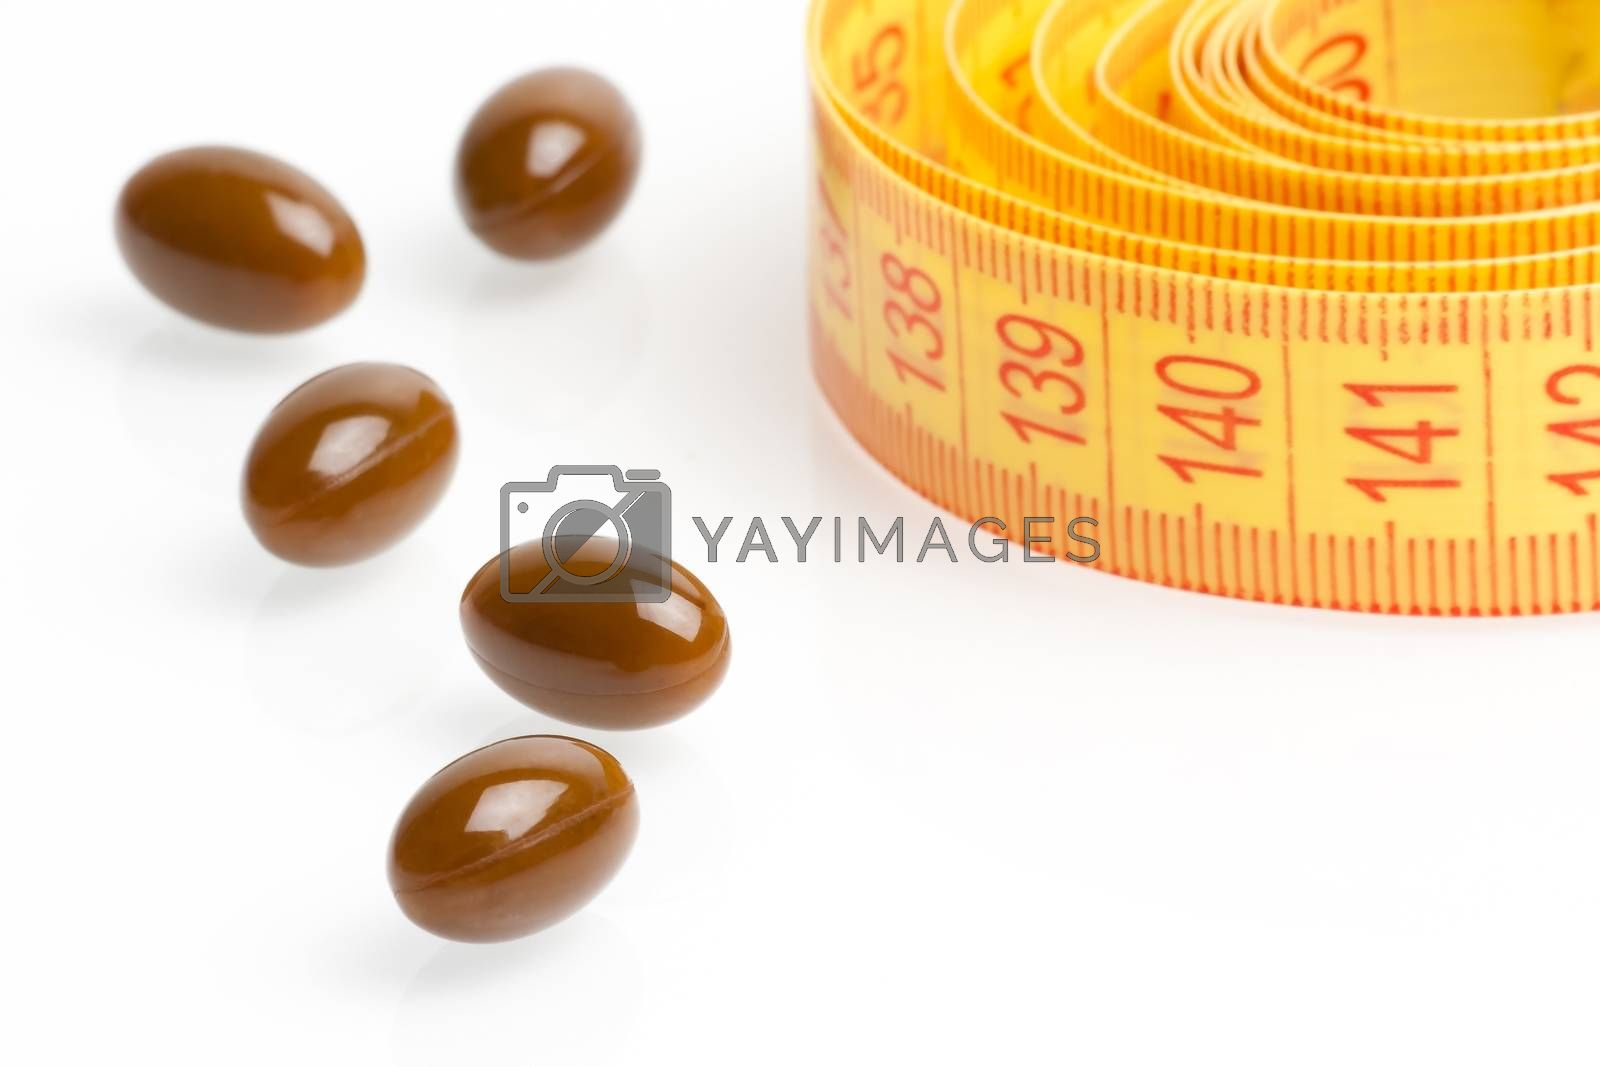 brown medical pills for dieting in front of measuring tape on a white background